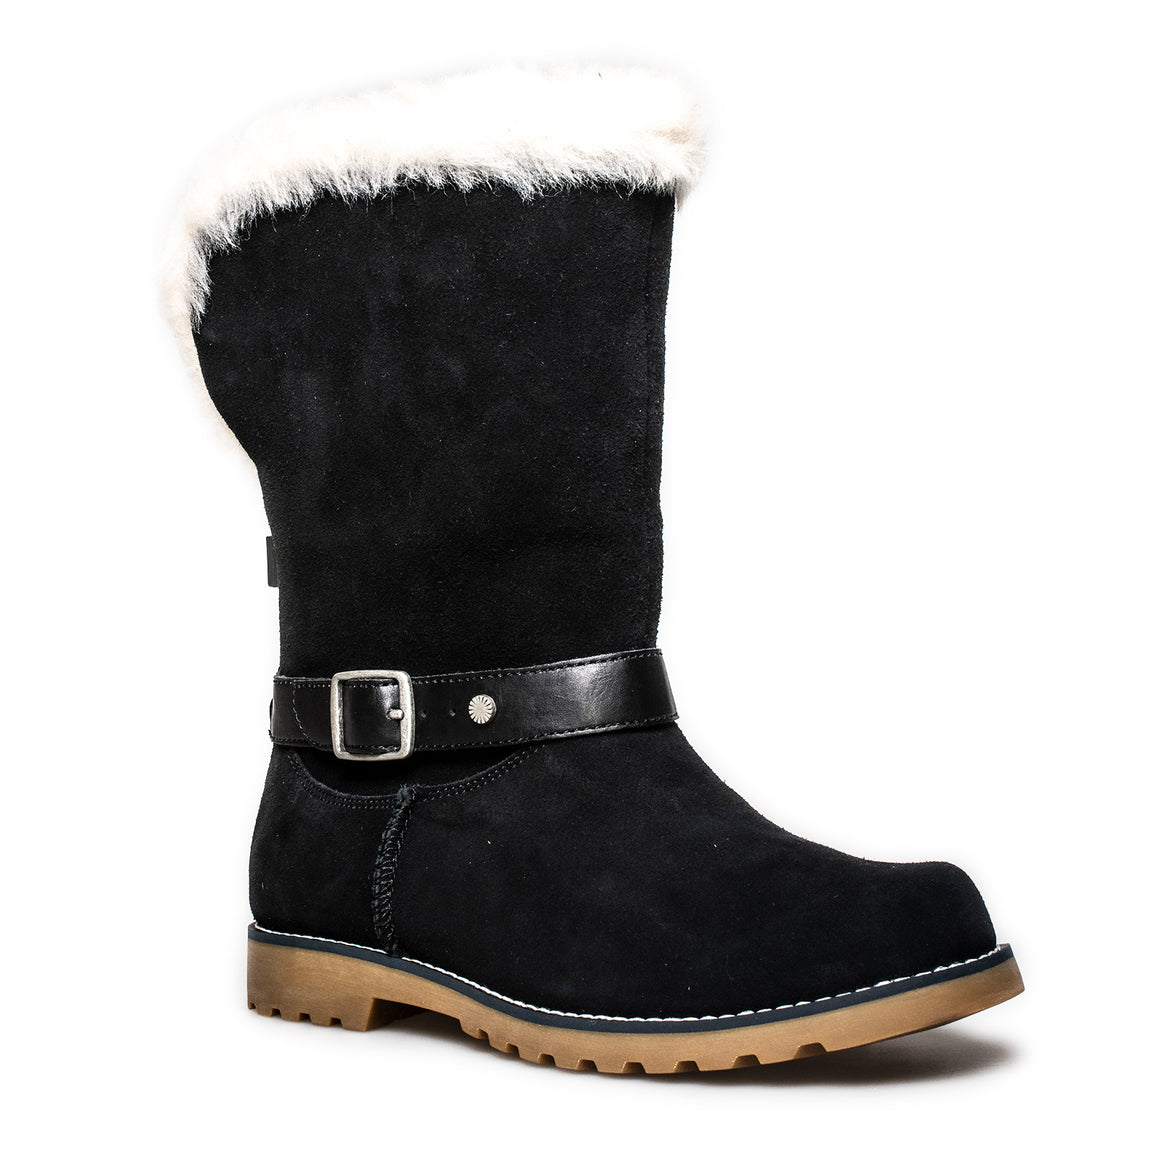 UGG Nessa Black Boots - Youth